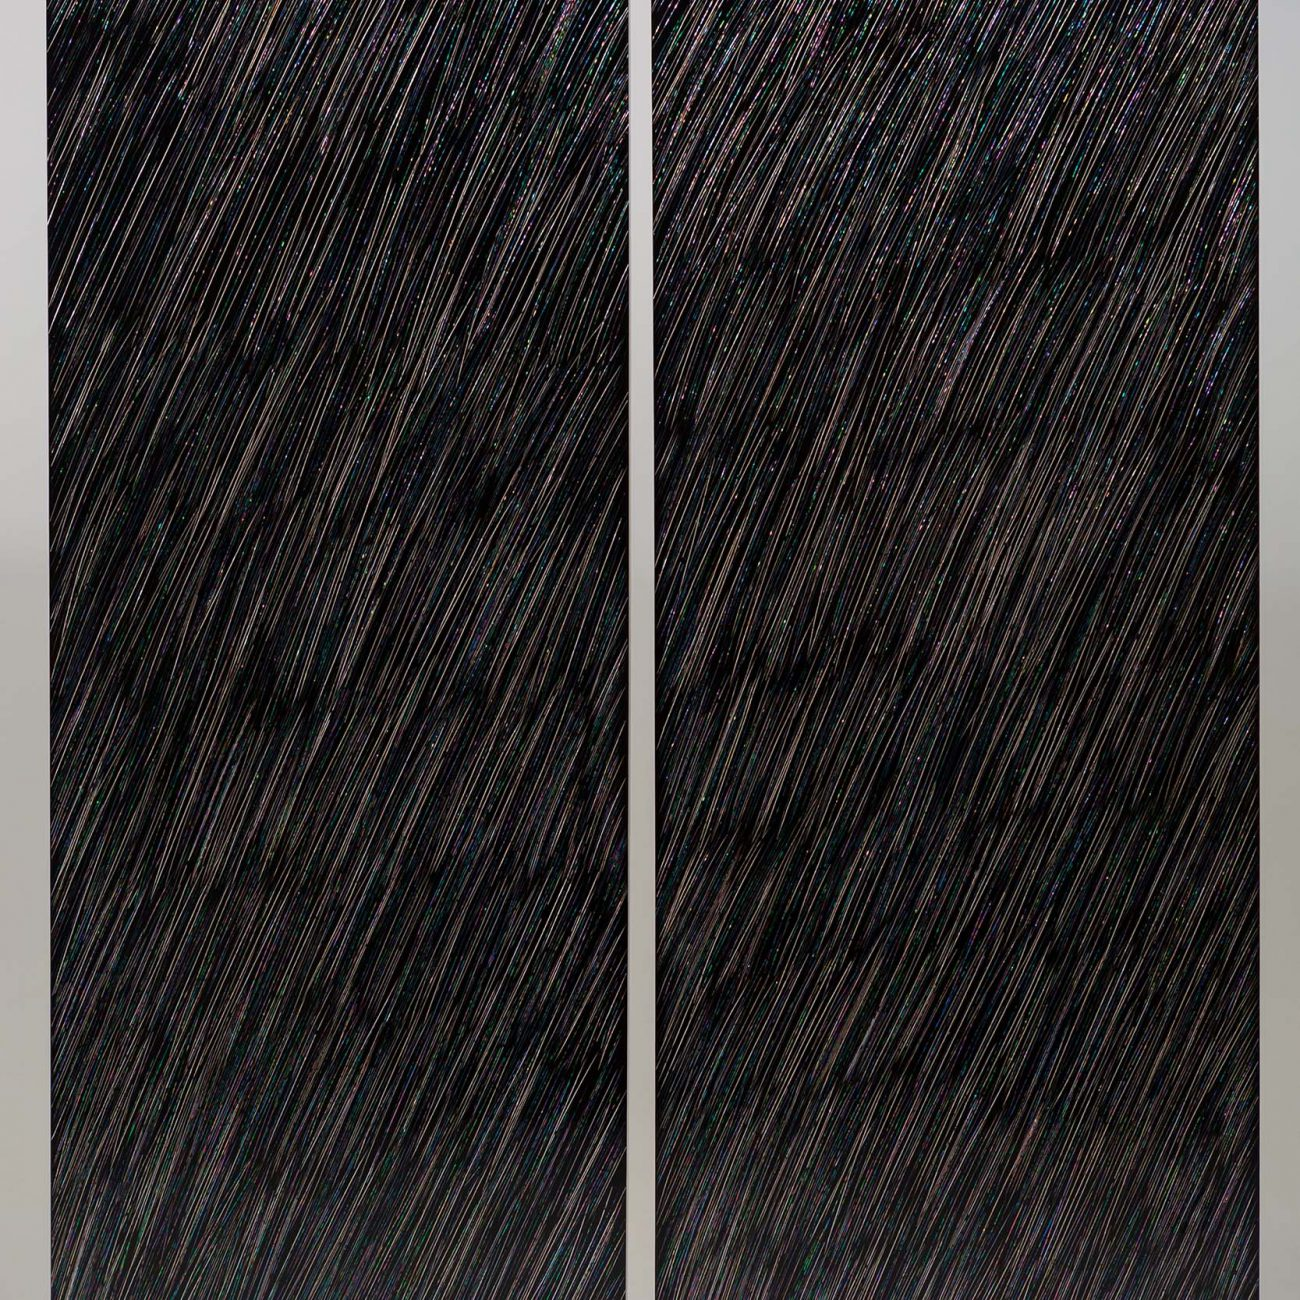 202016 & 202017, mother-of-pearl, hemp cloth on wood, natural lacquer, 180x60 cm, 2020 by JEONG Zik-Seong